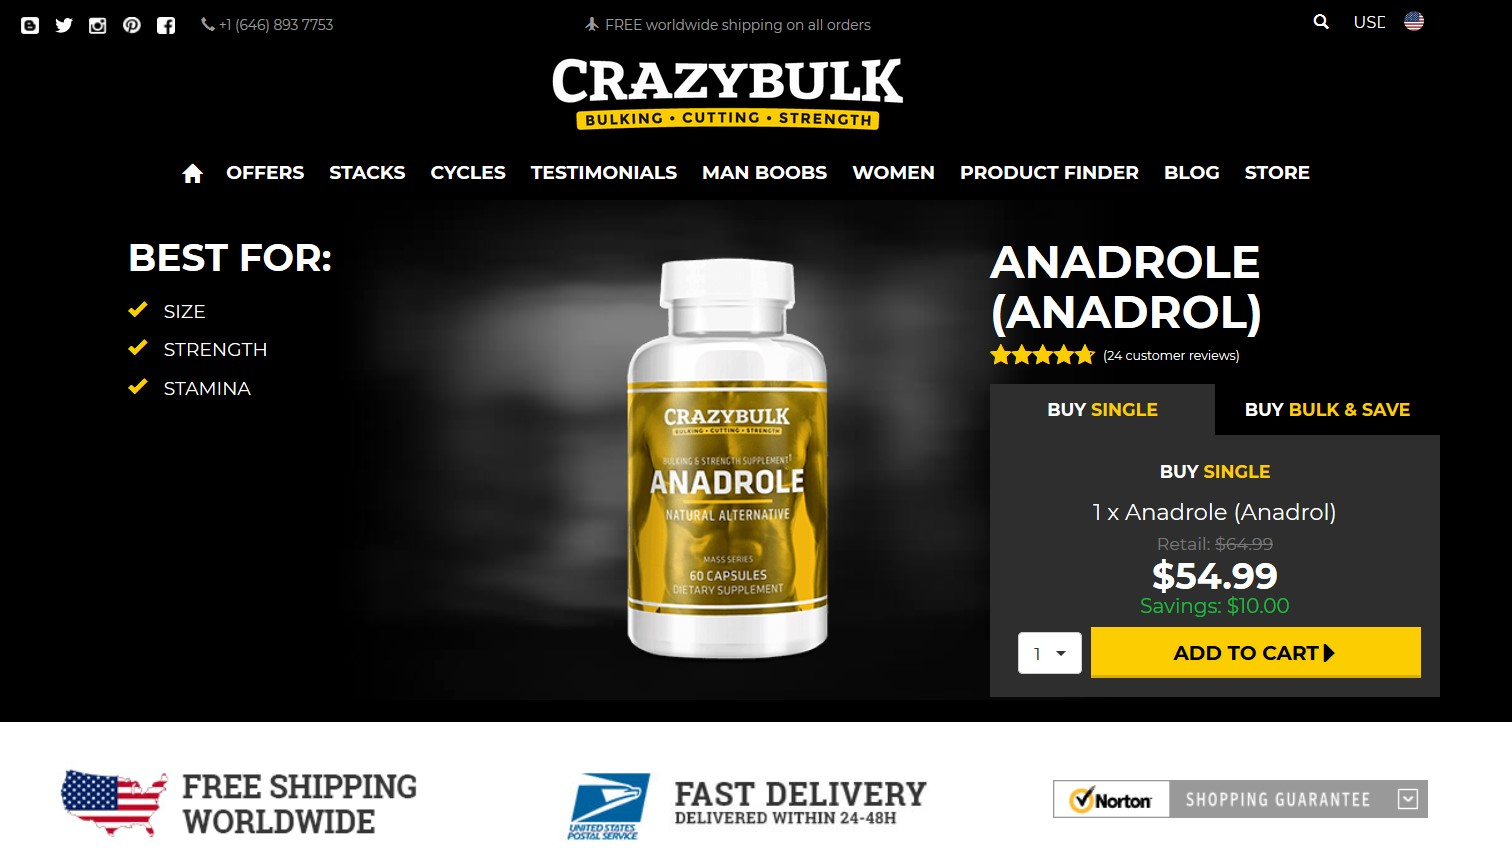 Anadrole Crazy Bulk official website